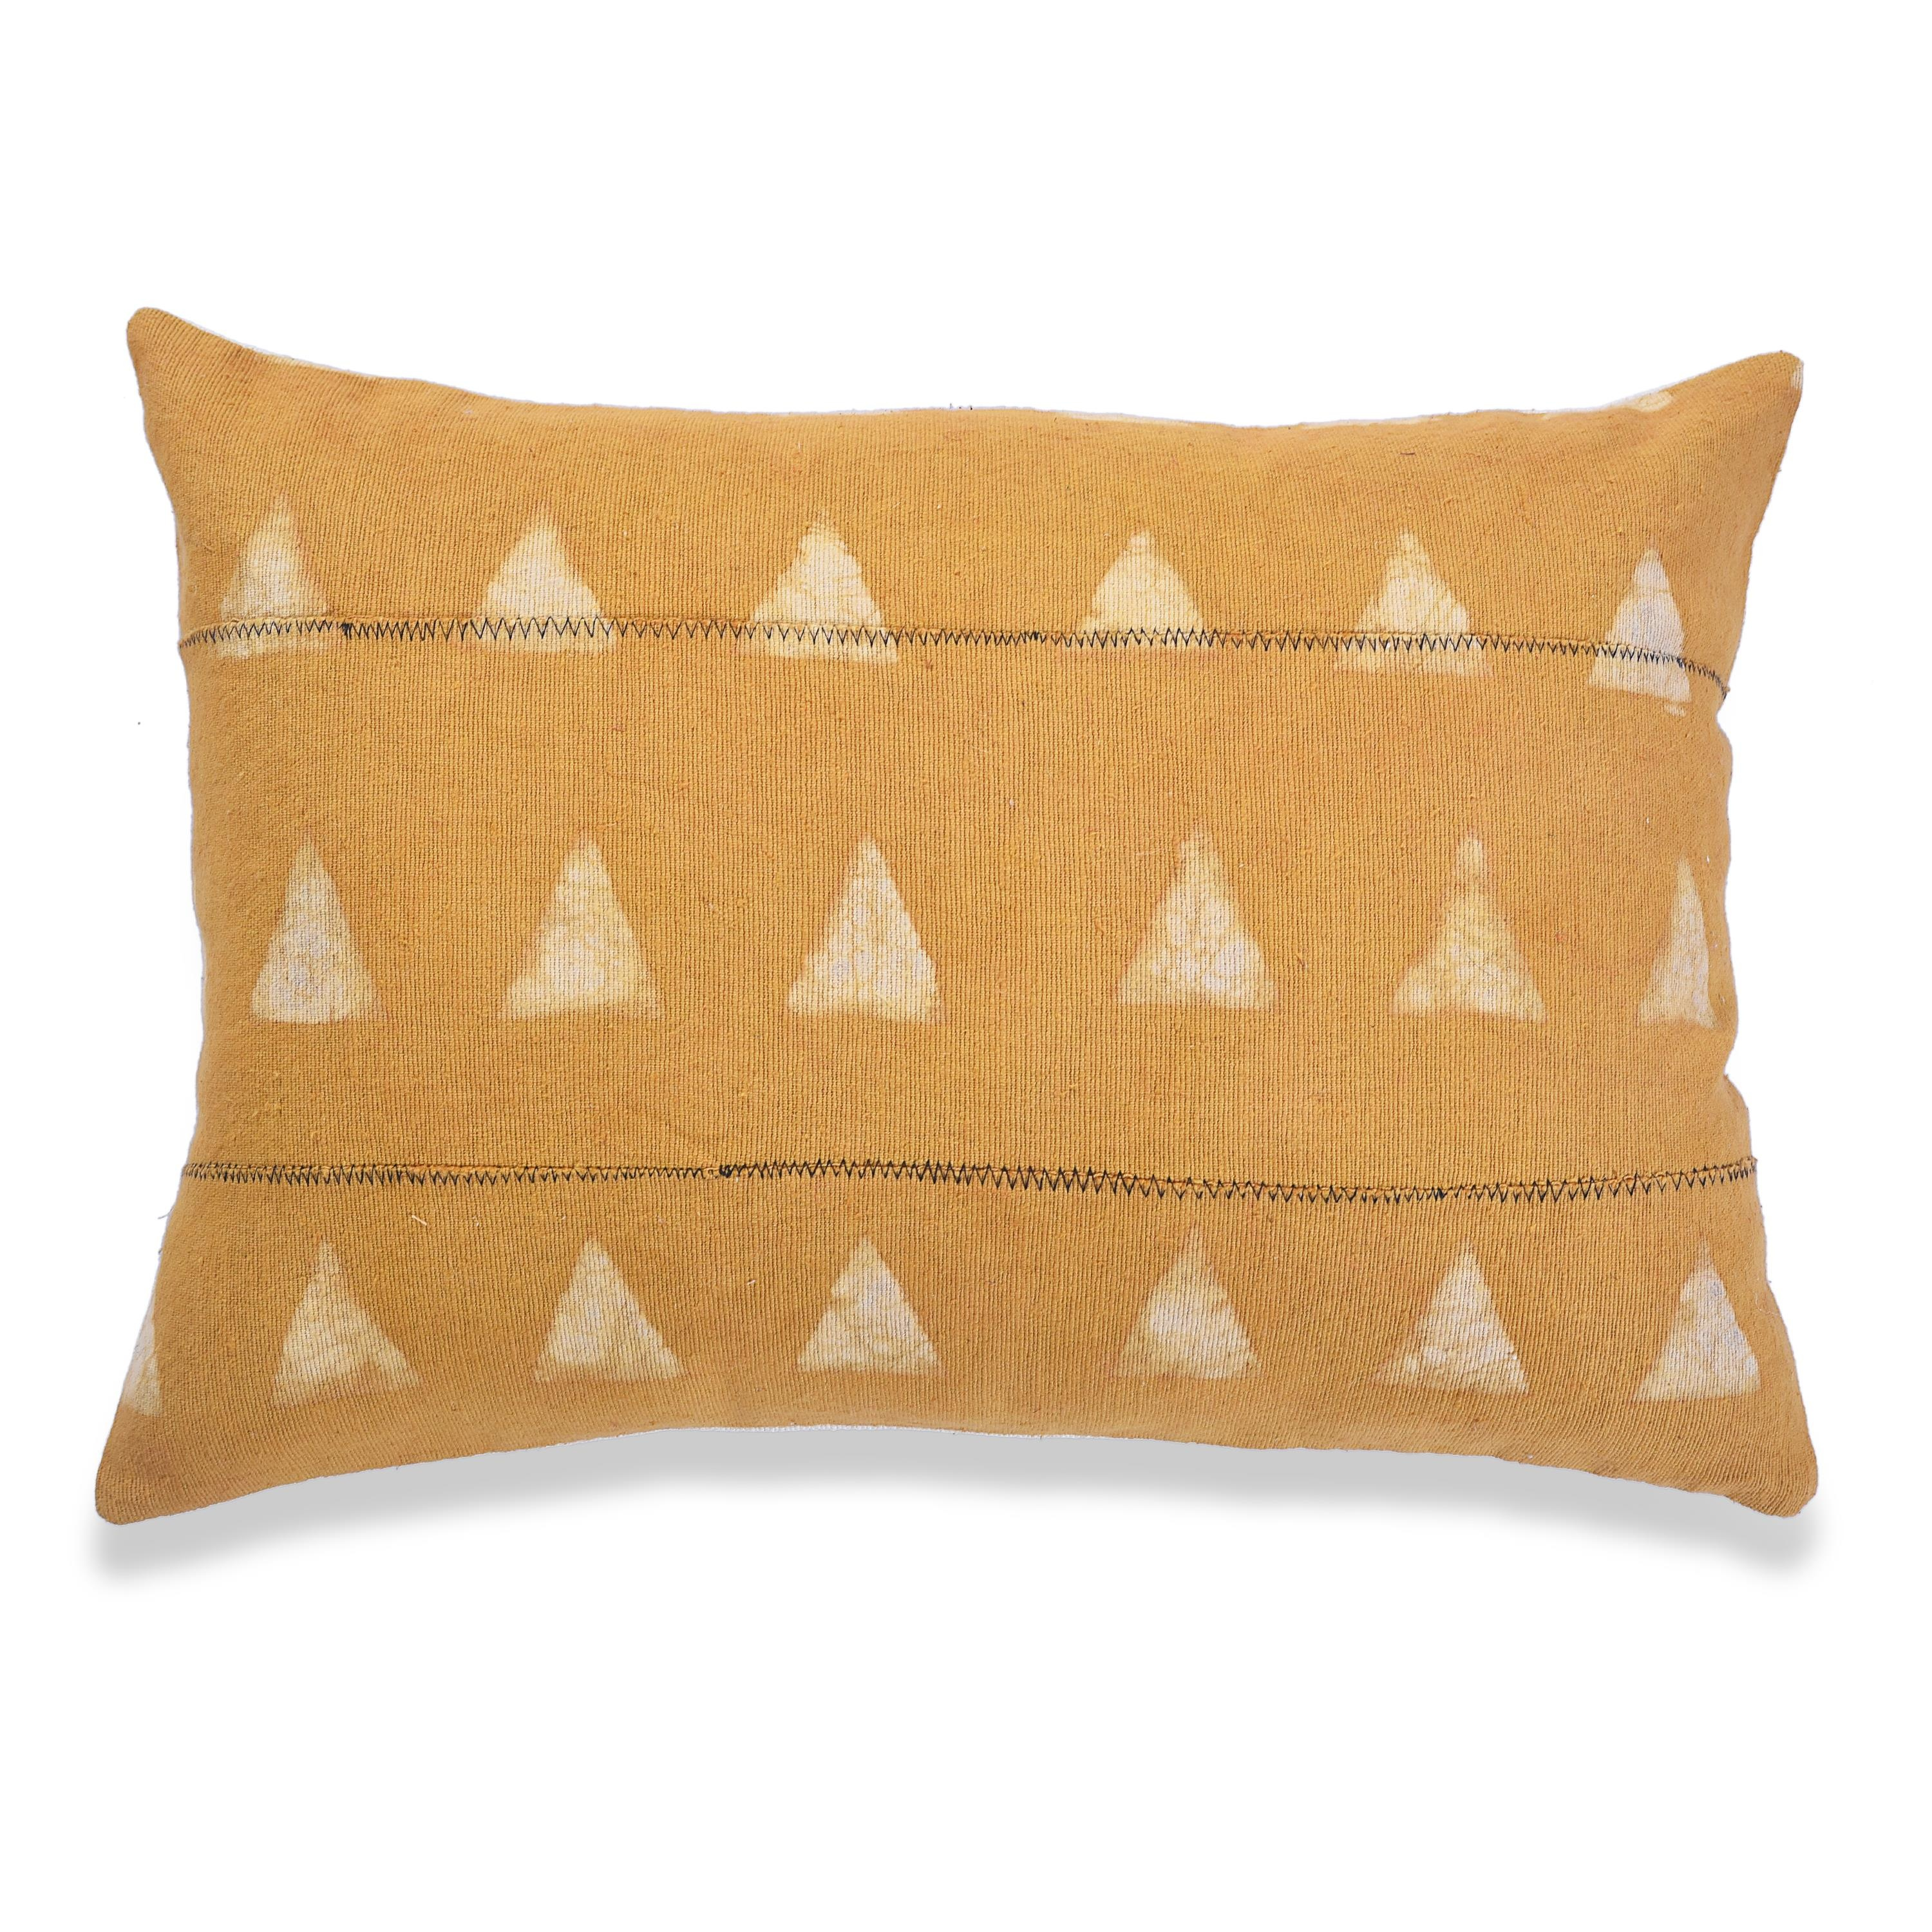 Printed Mudcloth Throw Pillow Covers